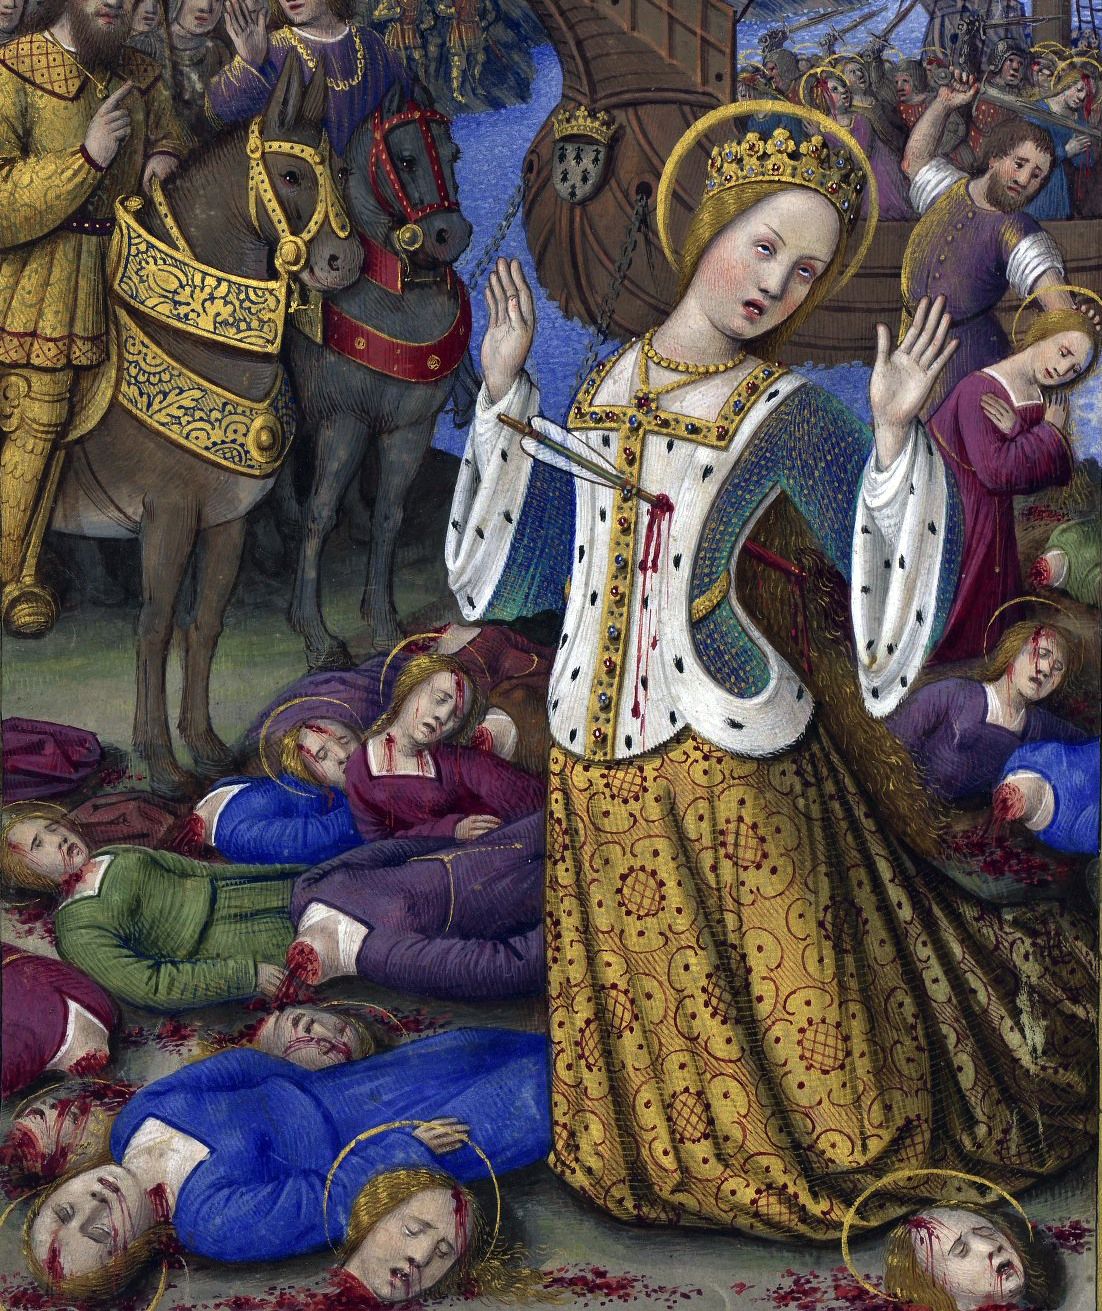 The matyrdom story of St. Ursula